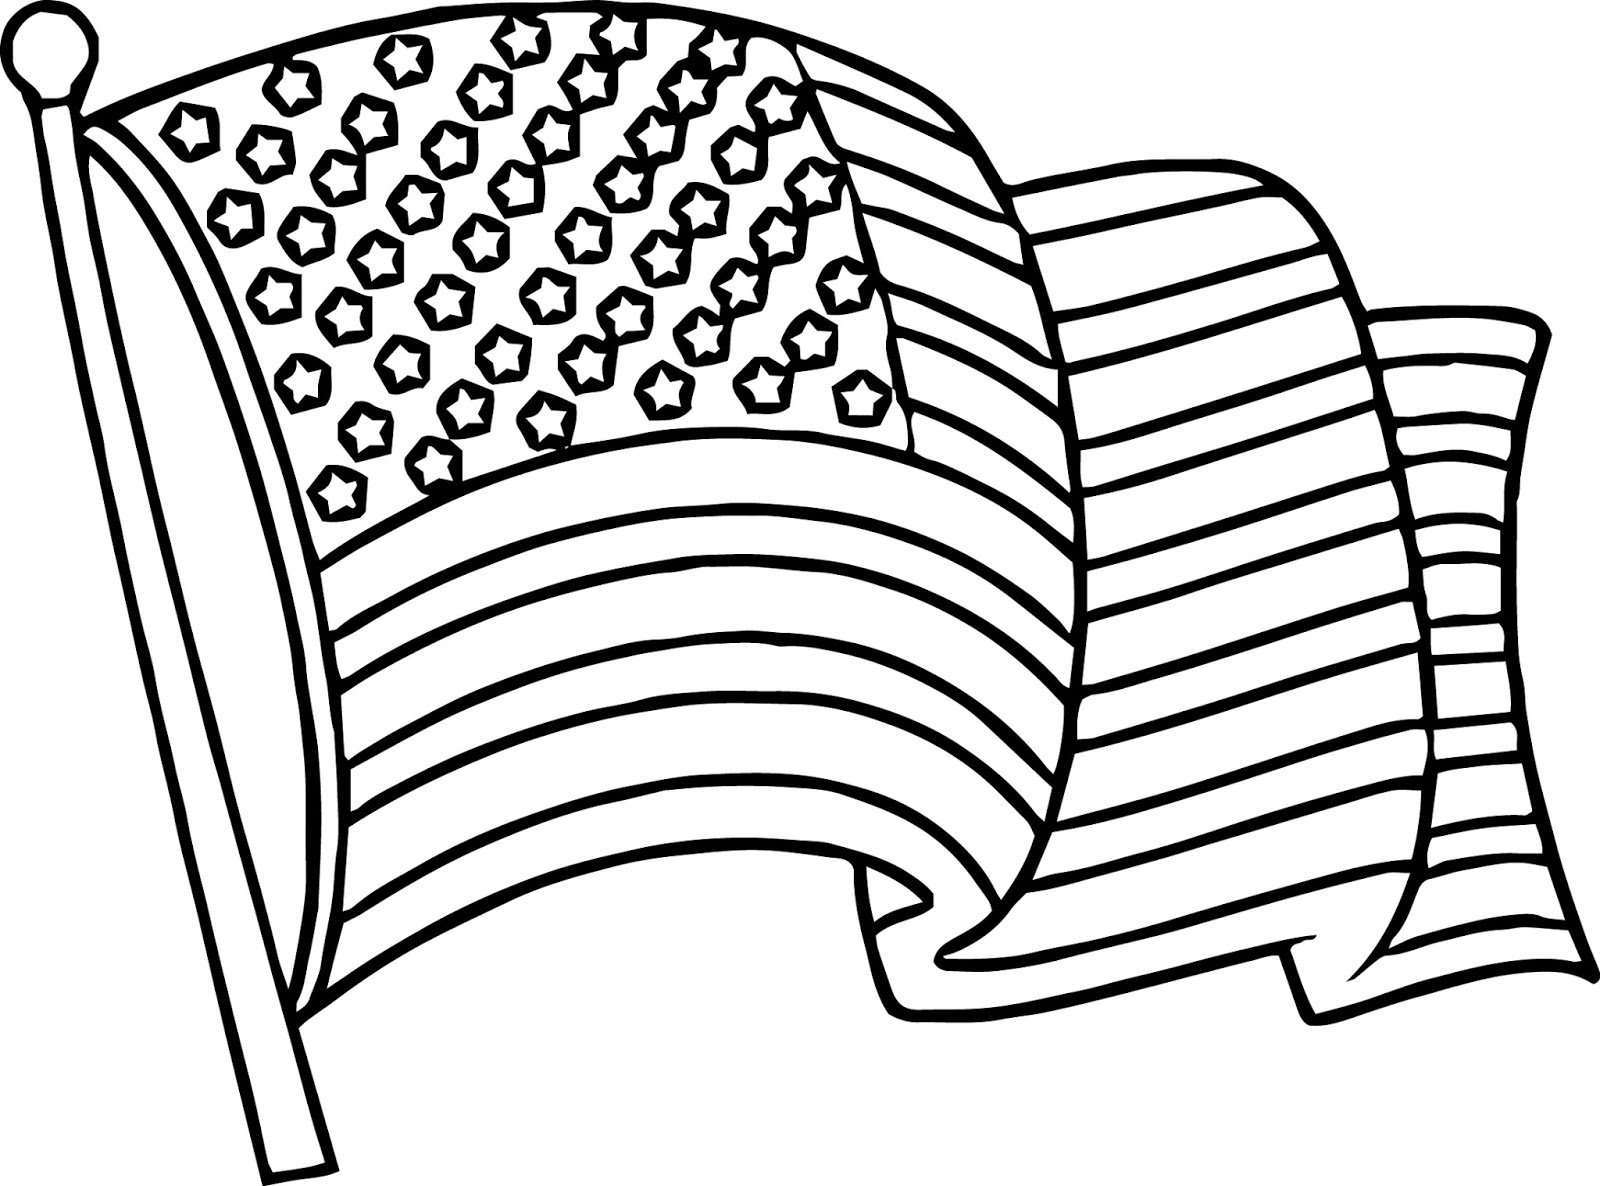 american flag coloring american flag coloring page for the love of the country american coloring flag